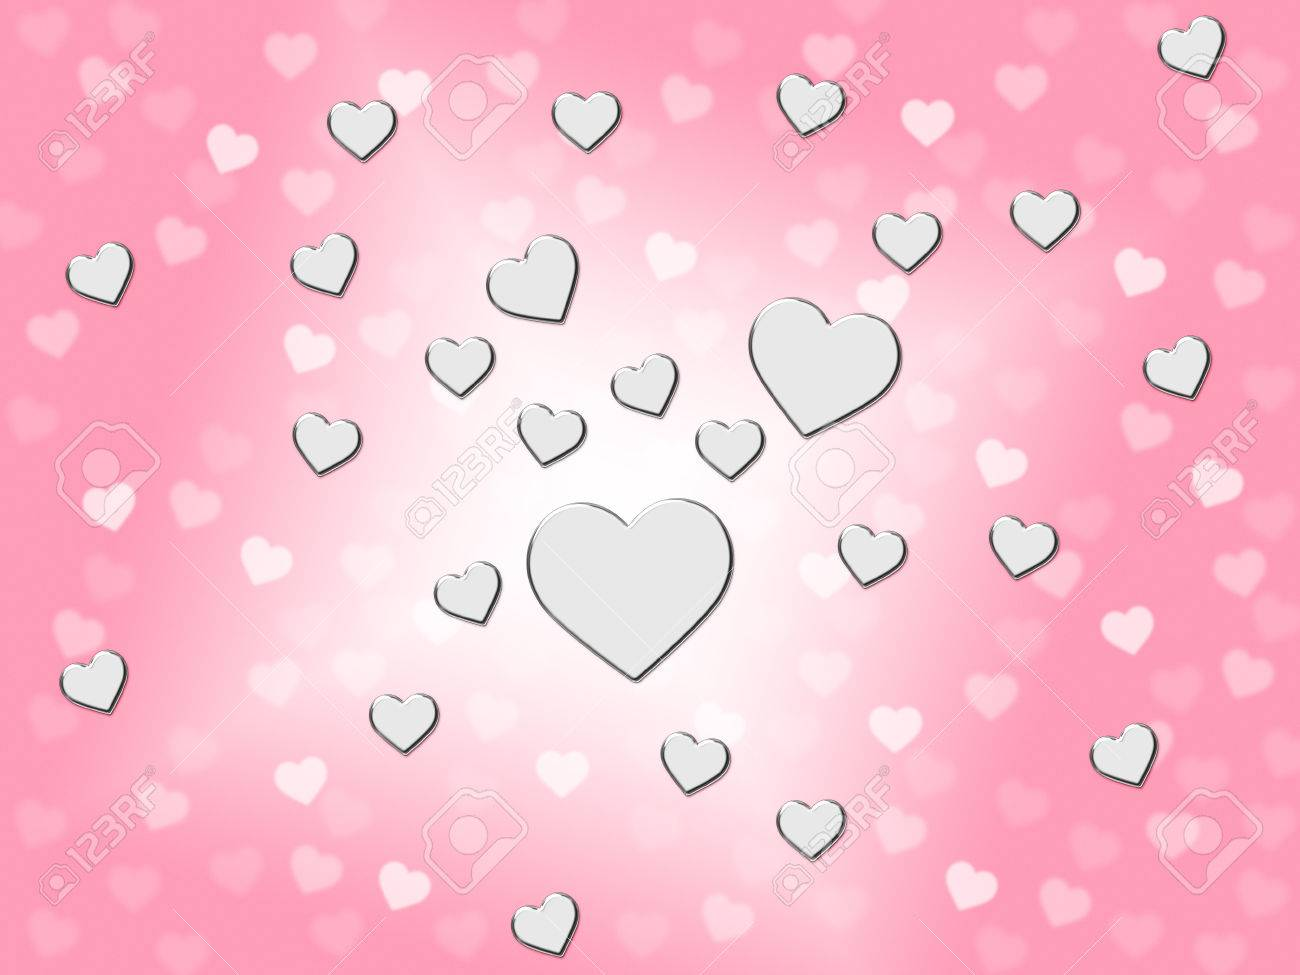 Silver Hearts Red Background Showing Romantic And Passionate Stock